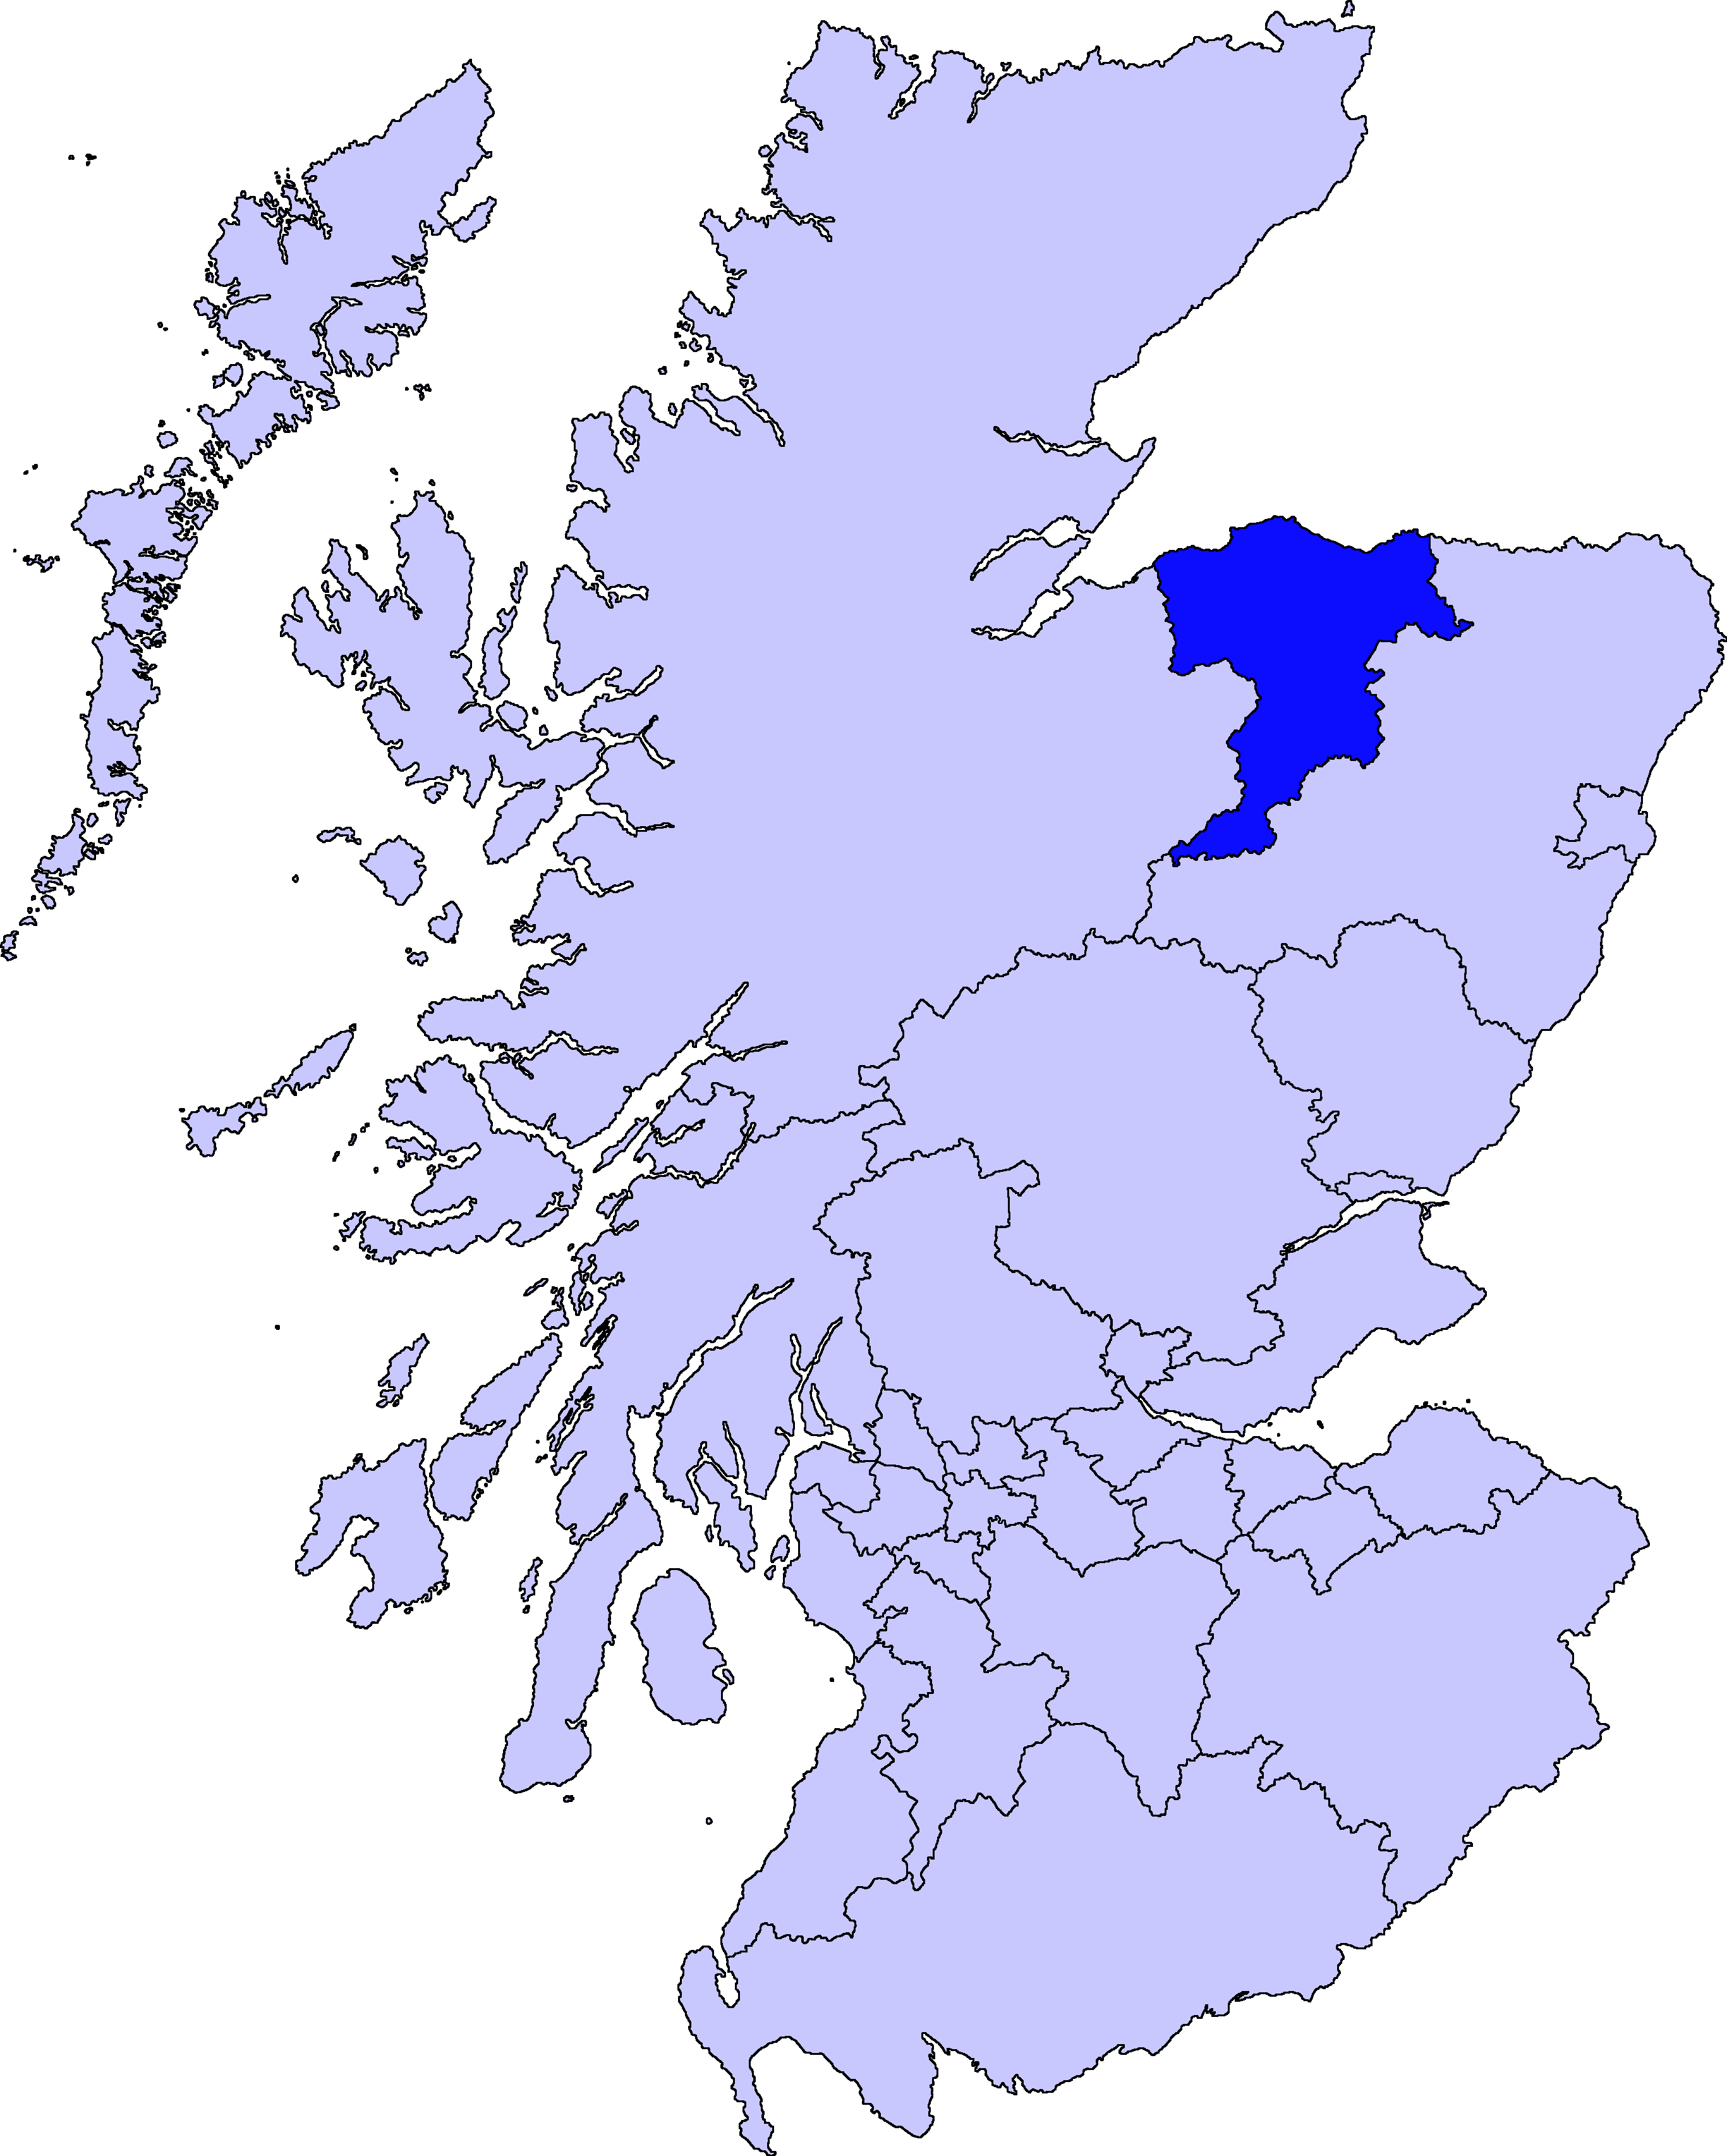 Image:ScotlandMoray.png